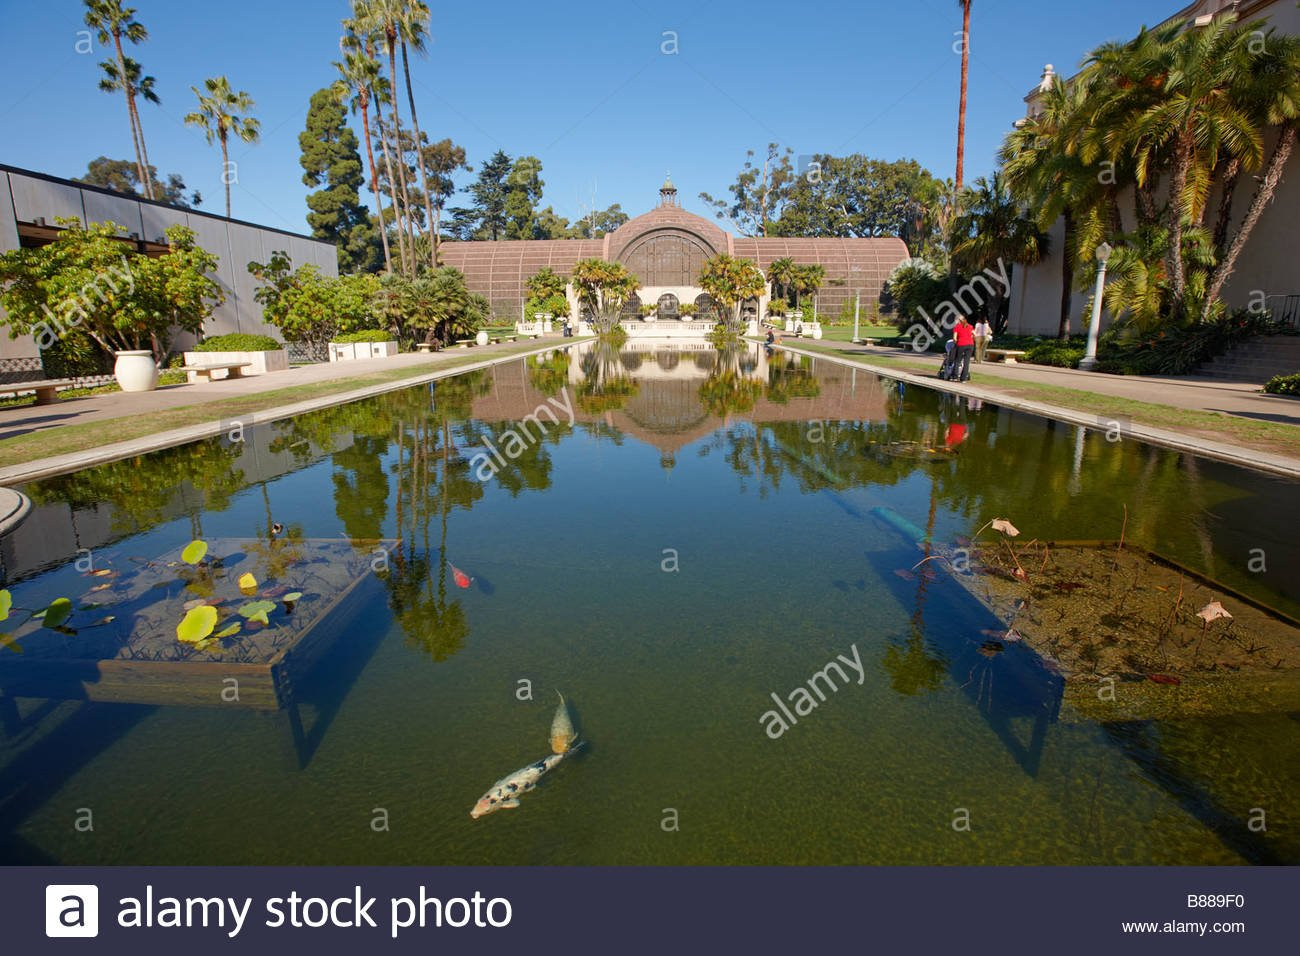 Fish pond with the Botanical Building at the background Balboa 1300x956